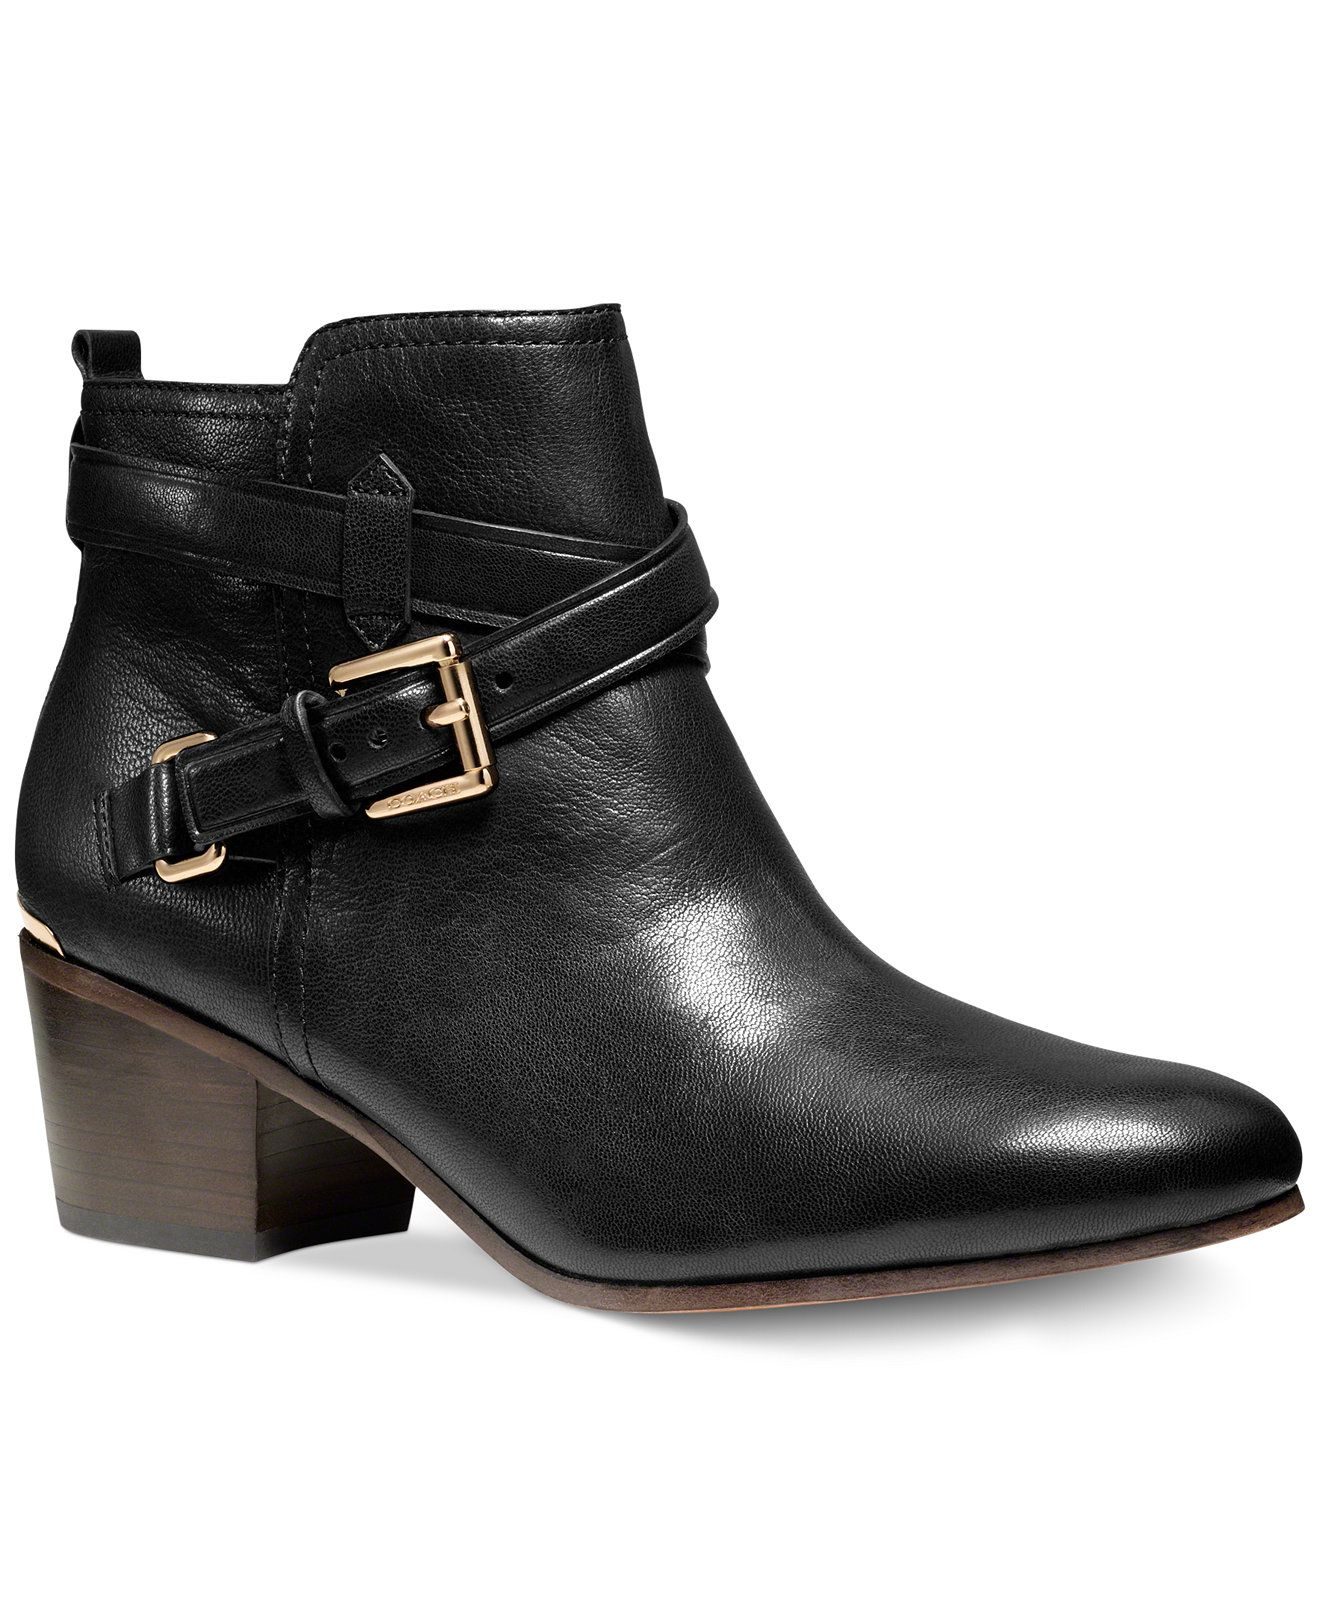 17596d814e34 COACH PAULINE BOOTIES - Macy s I want these!